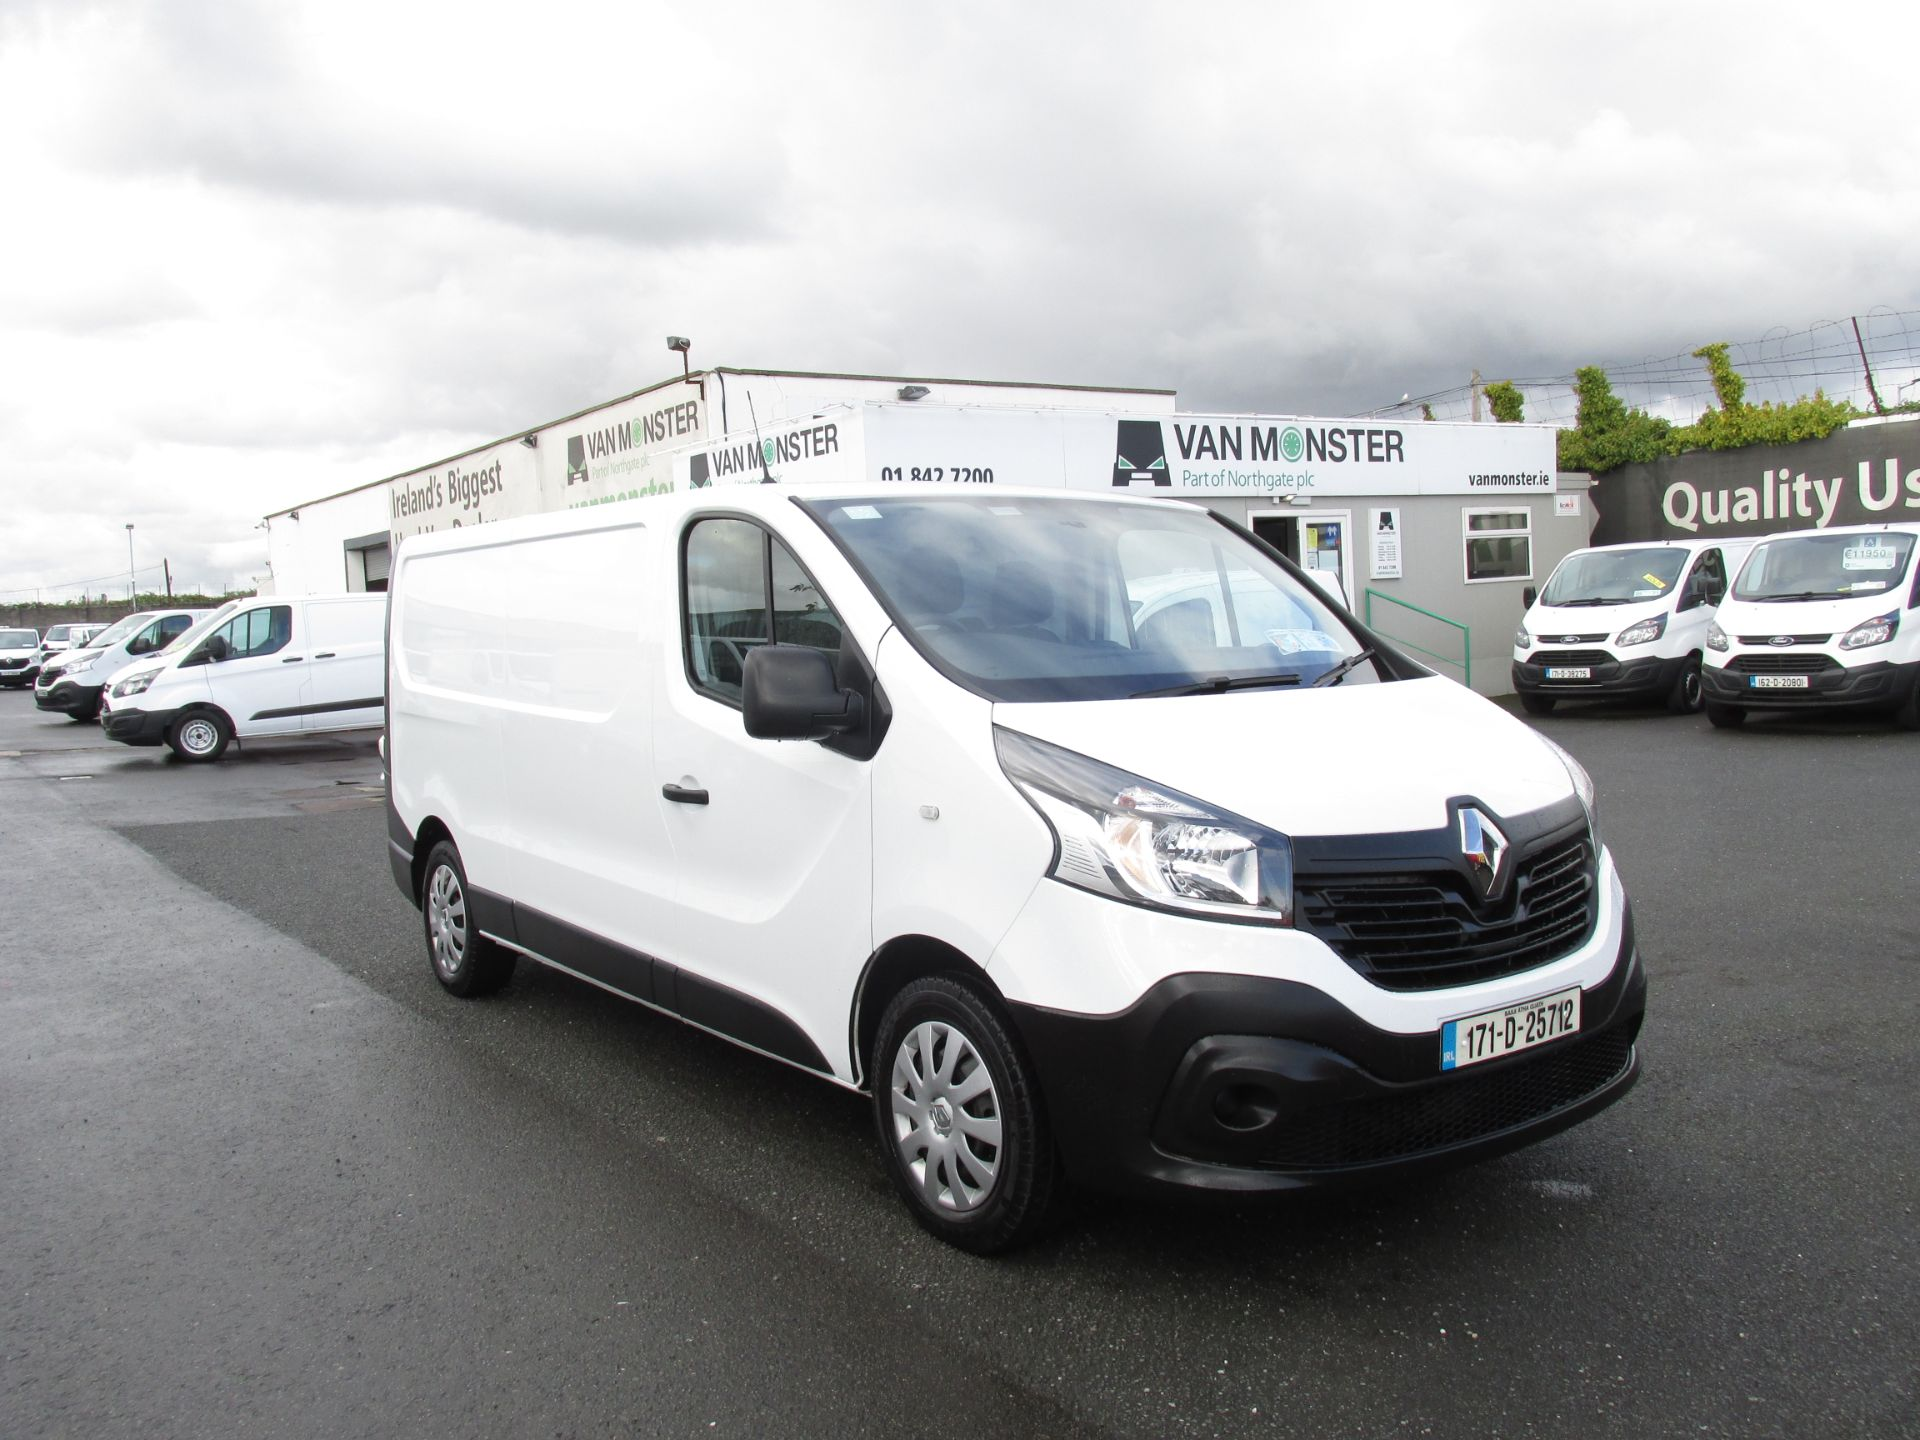 2017 Renault Trafic LL29 DCI 120 Business 3DR (171D25712) Image 1